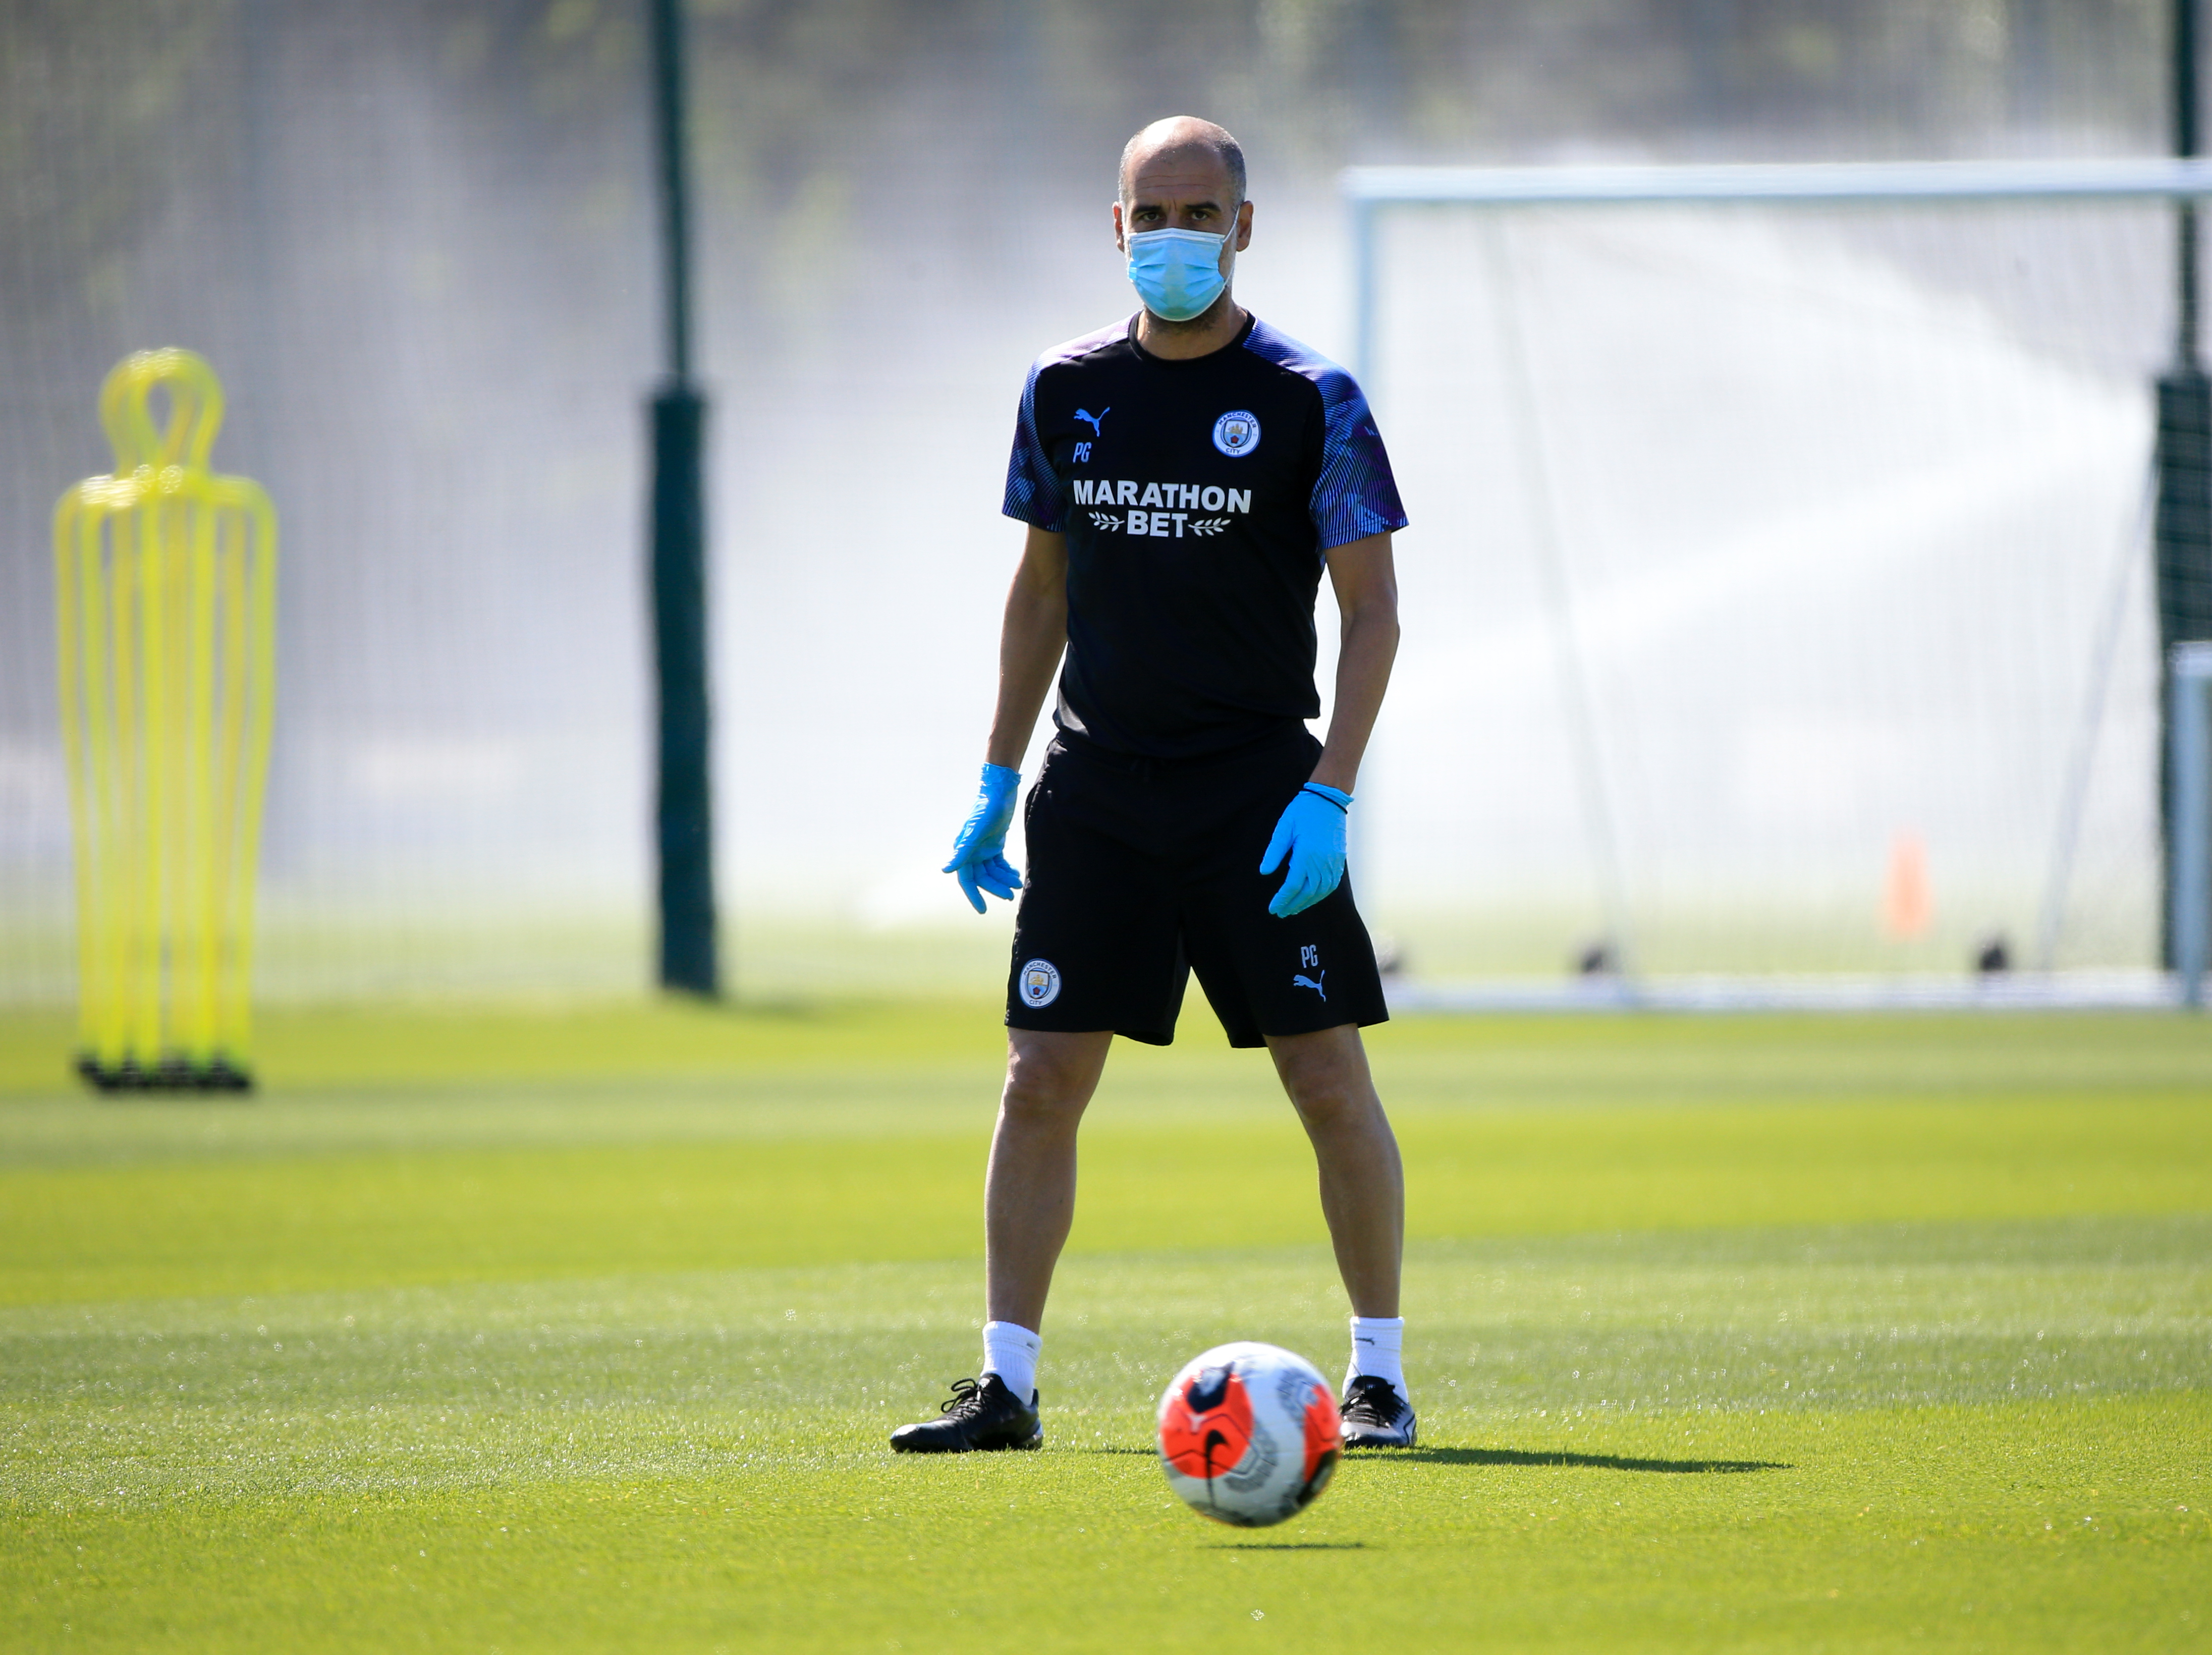 MANCHESTER, ENGLAND - MAY 25: Manchester City's Pep Guardiola in action during training at Manchester City Football Academy on May 25, 2020 in Manchester, England. (Photo by Tom Flathers/Manchester City FC via Getty Images)